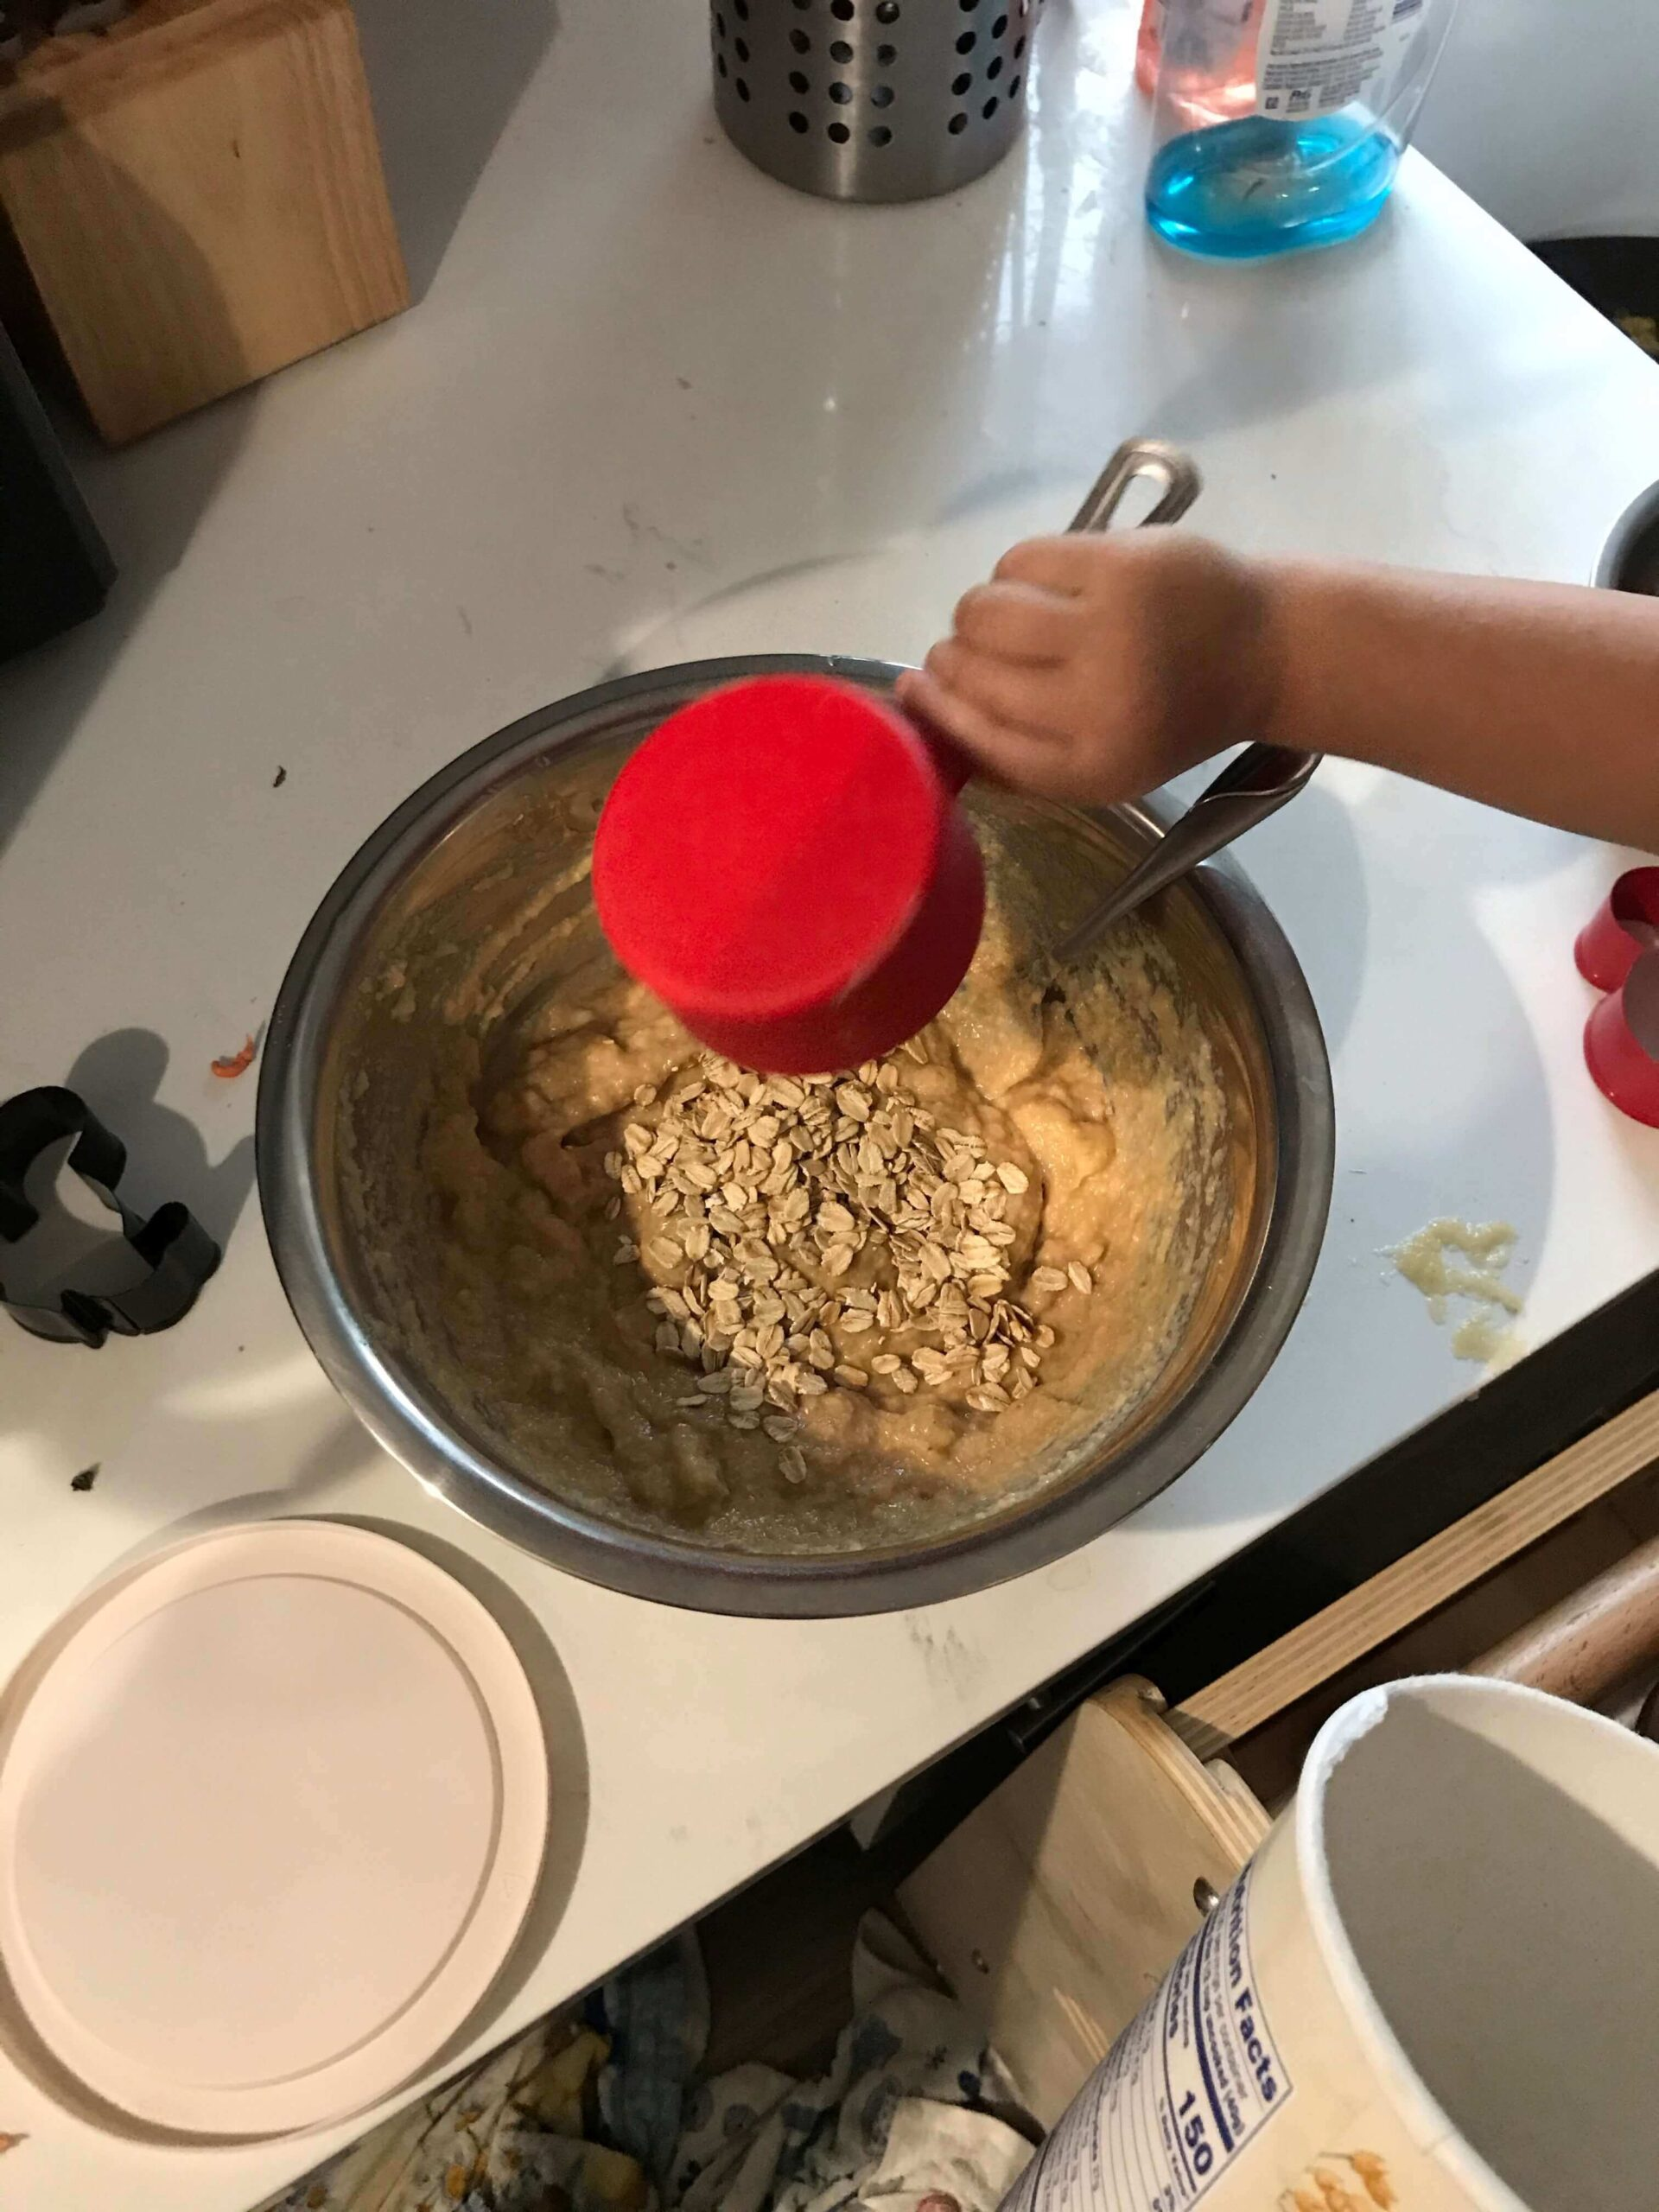 a little hand measuring ingredients into a mixing bowl to make cookies